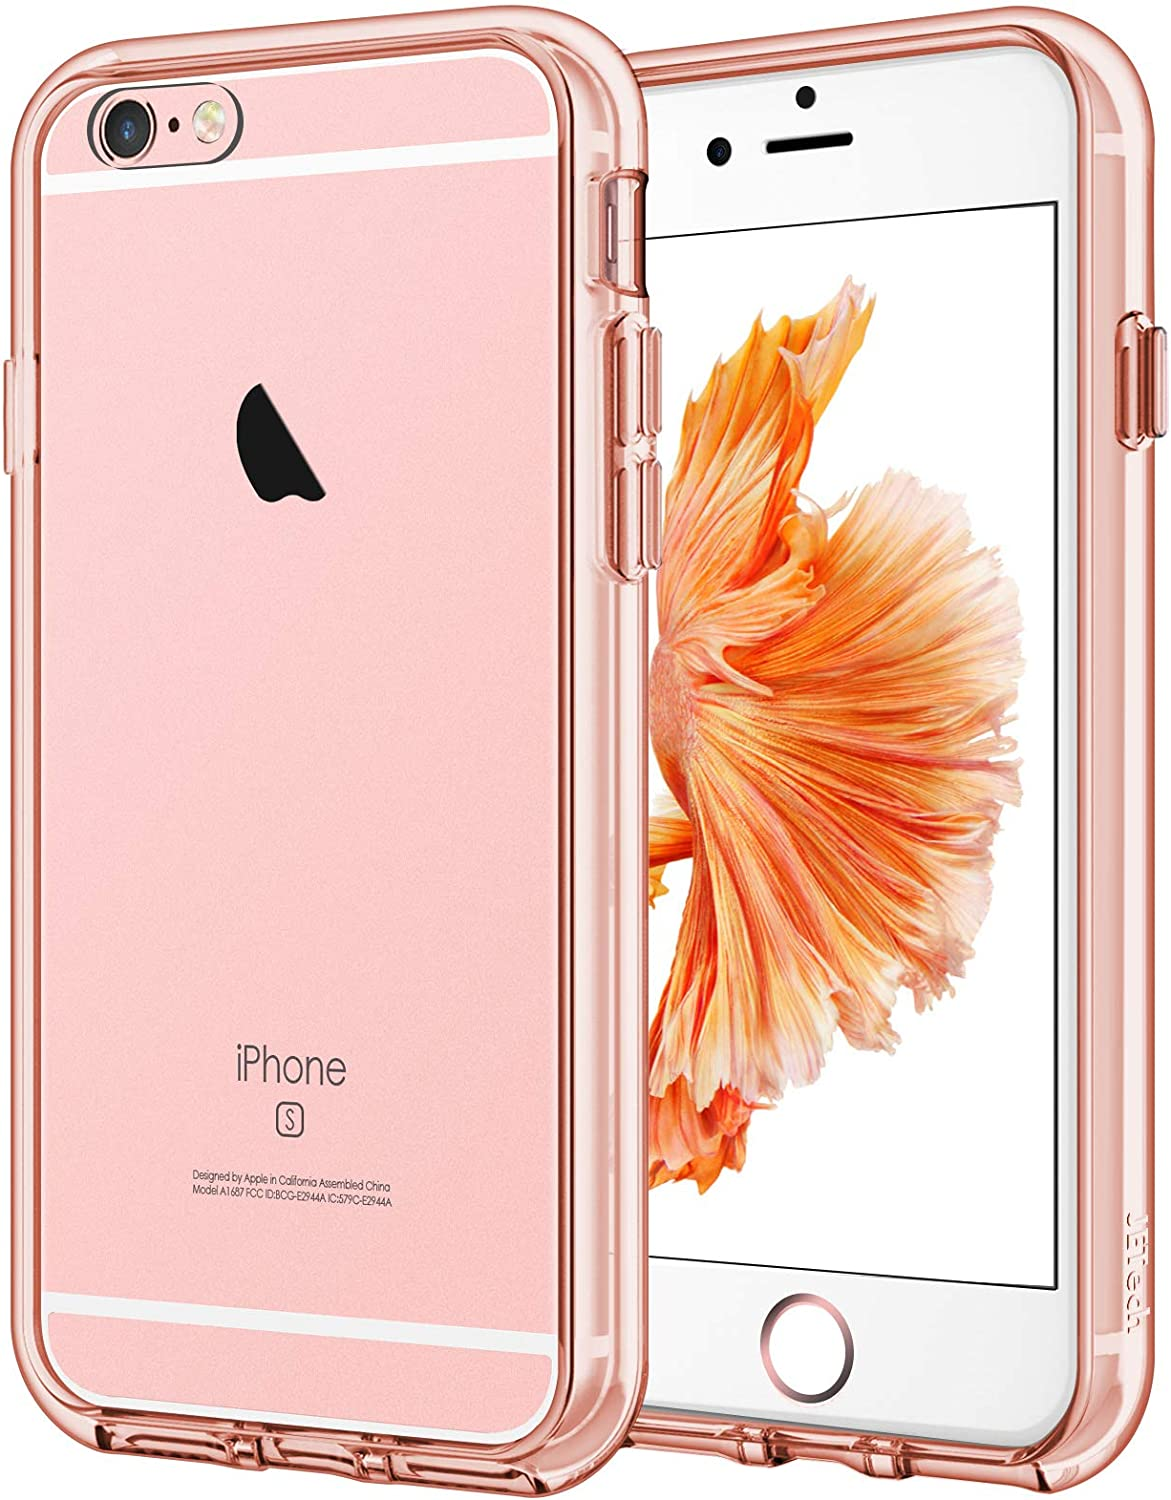 JETech Case for iPhone 6 Plus and iPhone 6s Plus 5.5-Inch, Shock-Absorption Bumper Cover, Anti-Scratch Clear Back (Rose Gold)